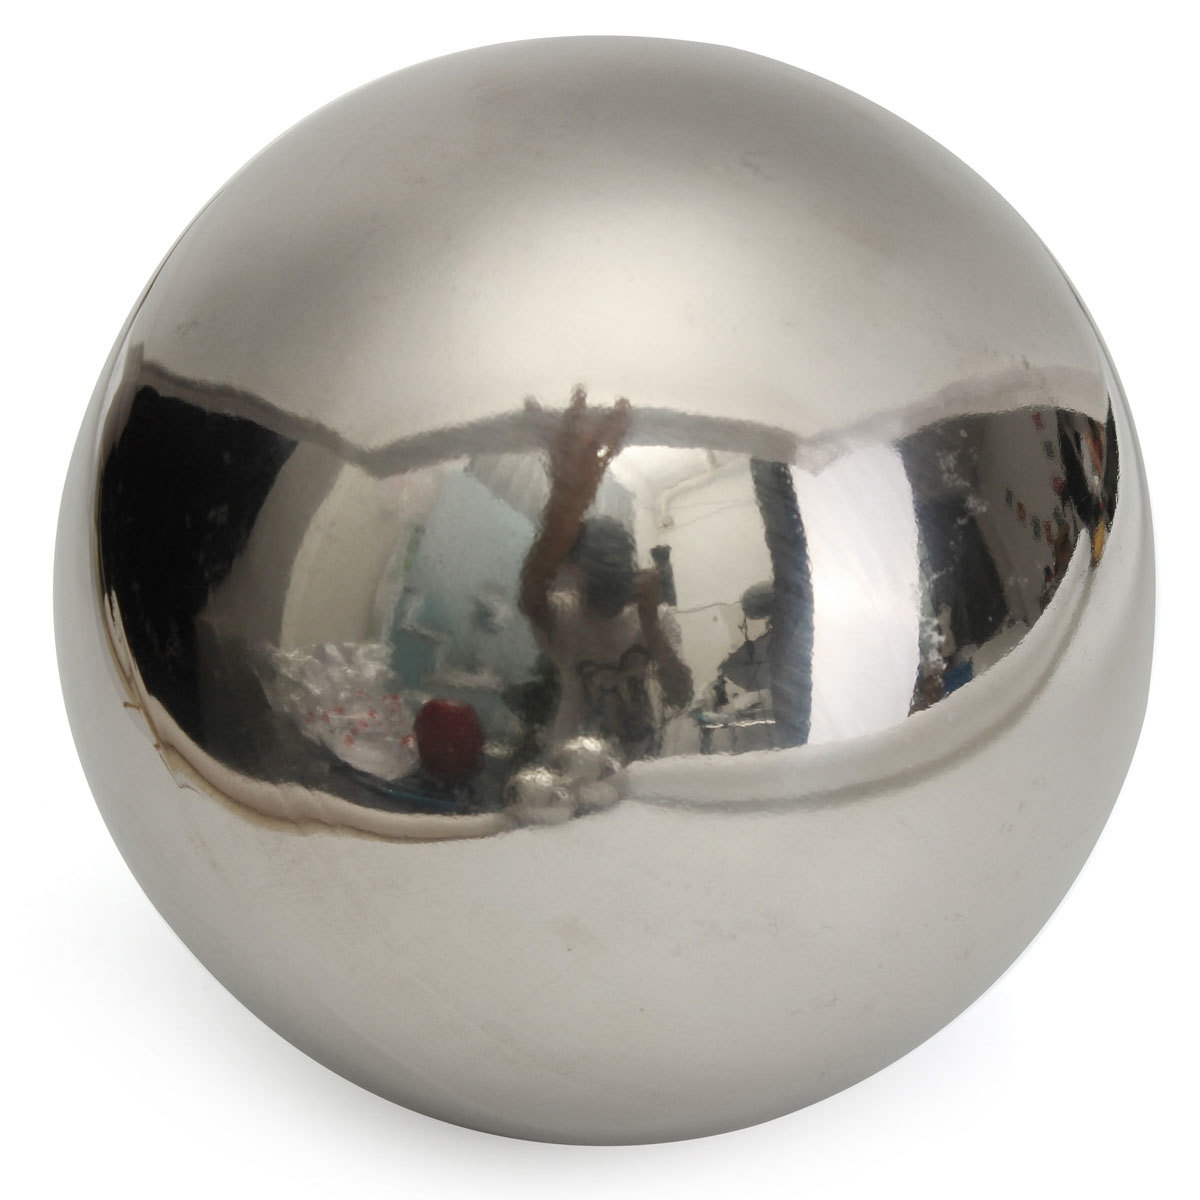 Stainless Steel Large Mirror Sphere Hollow Ball Garden Malls Ornament Decoration